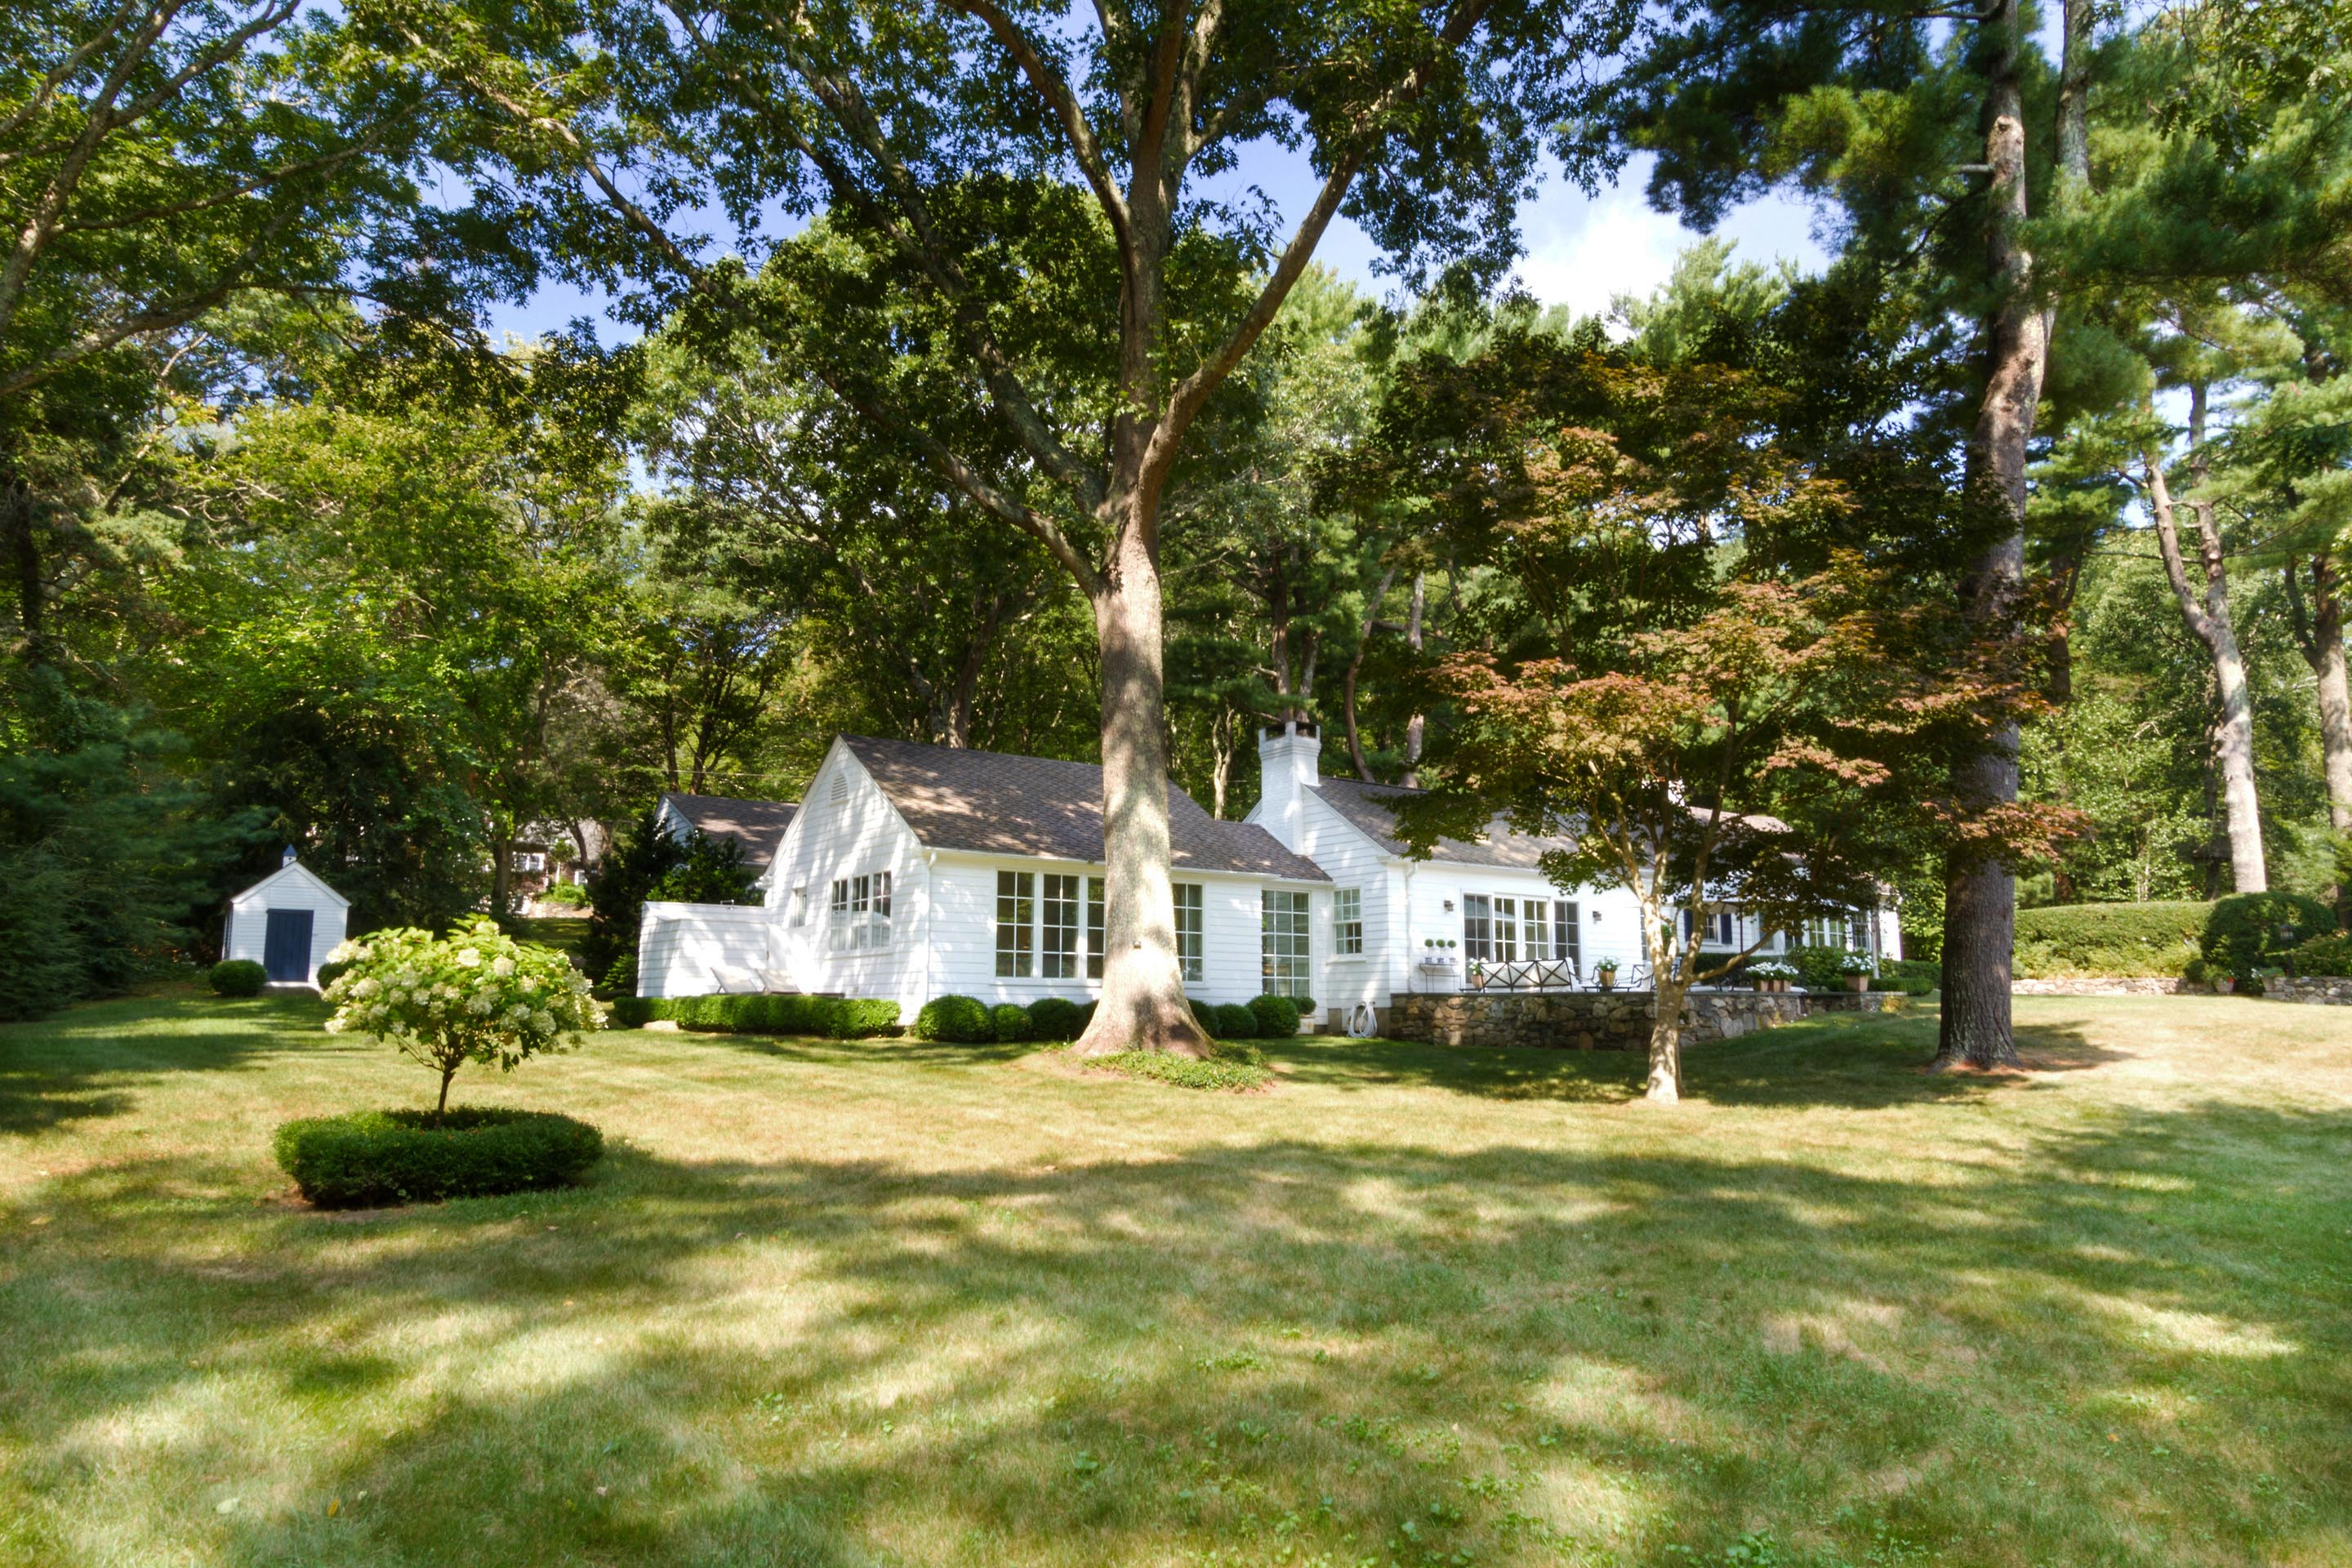 """STONEHEDGE COTTAGE"" SELLS FOR $1.675M, MARKING  SECOND HIGHEST SALE IN SAUNDERSTOWN YEAR-TO-DATE*"